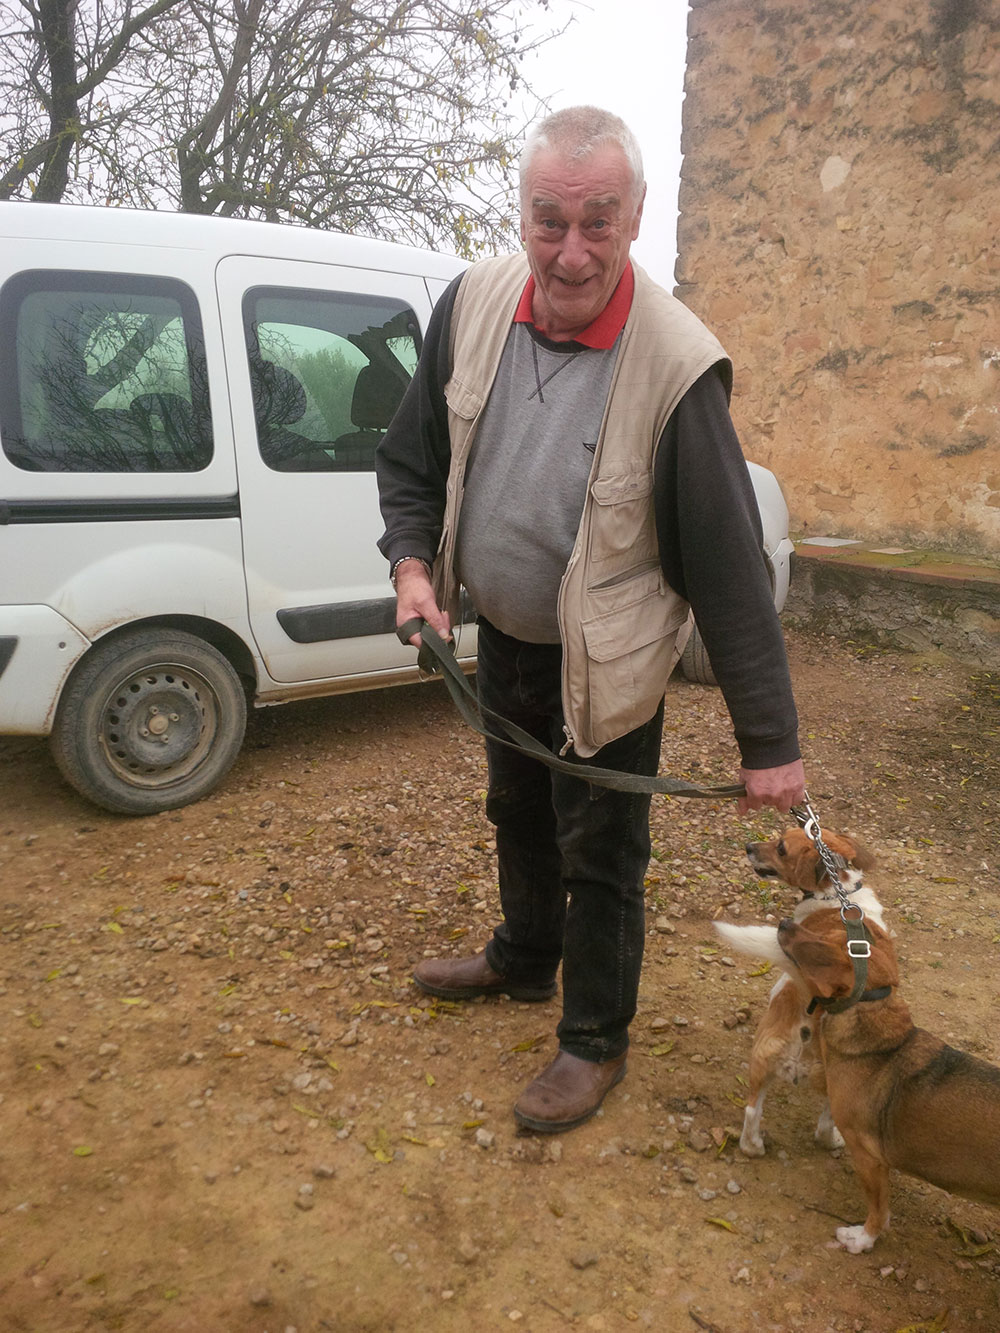 Les was away at a Christmas market, so it was left to Bill to demonstrate his dog-wrangling skills